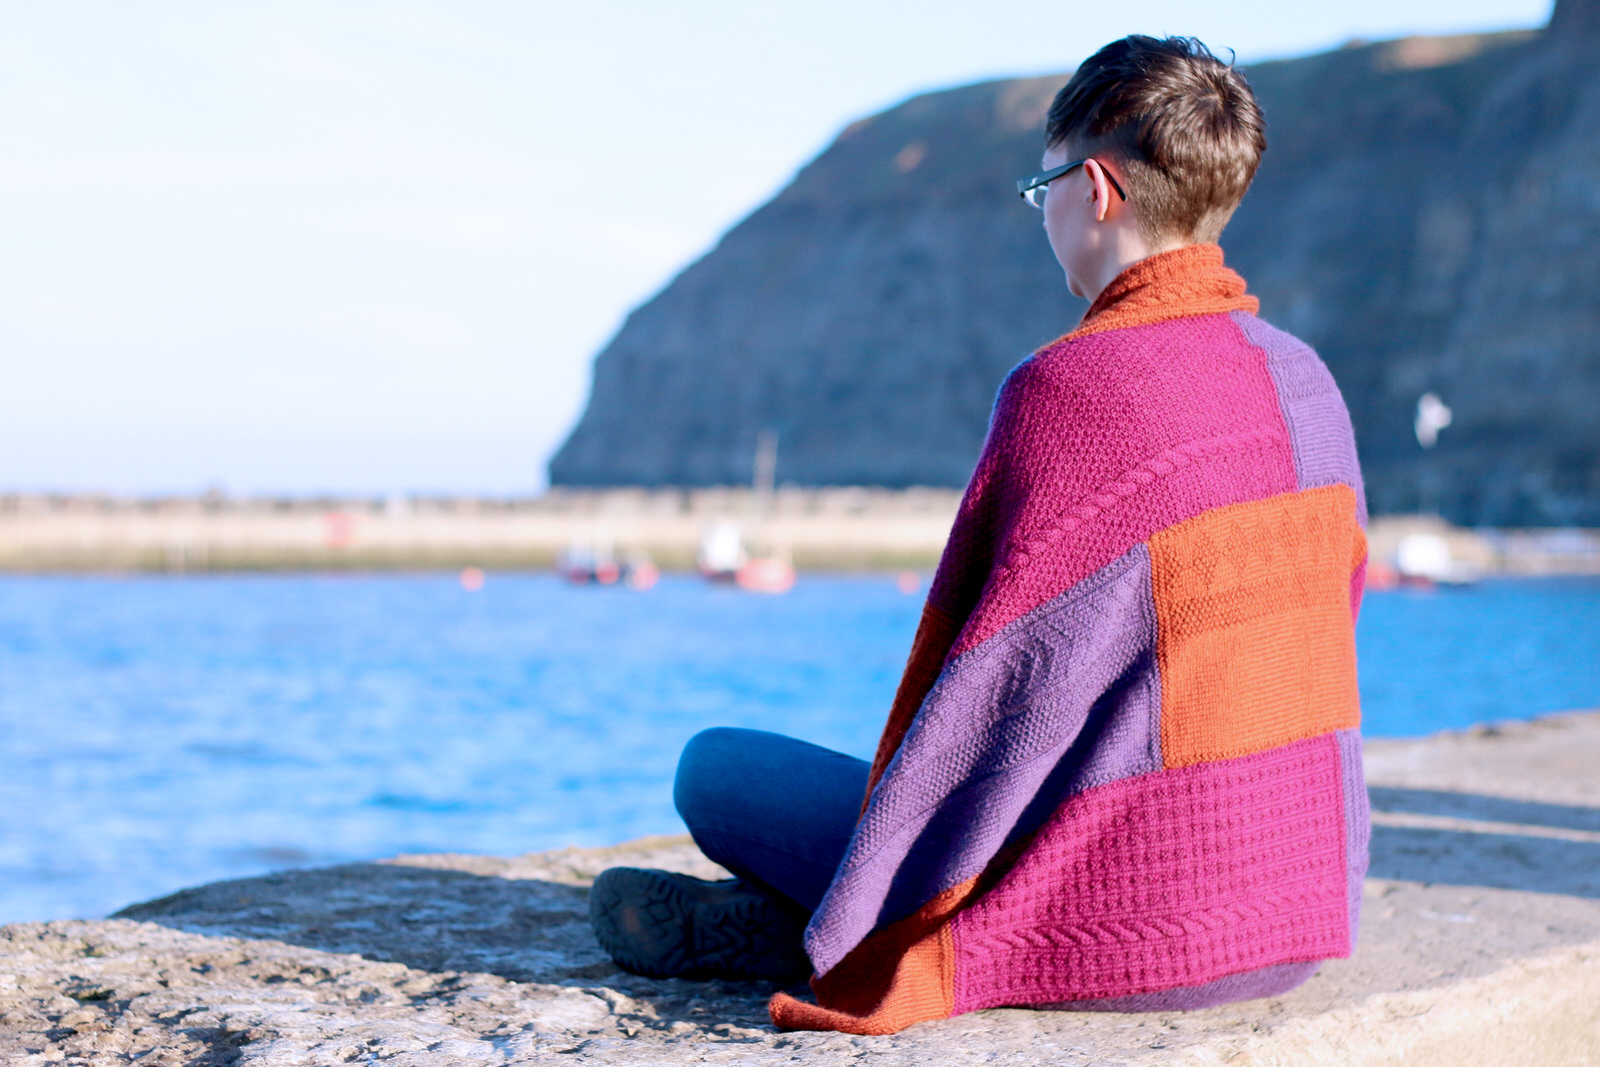 """Sandsend blanket  A blanket with a patchwork sampler effect, using a variety of stitch patterns found throughout the Yorkshire Shores book  Yarn: Yarn:Dovestone DK (252 yds / 230m in 100g)  Yarn Quantities: 1509 yards (1380 m)  Needles:  4mm  Notions:  Cable needle  Size:  88 x 132cm / 34.5 x 52"""""""